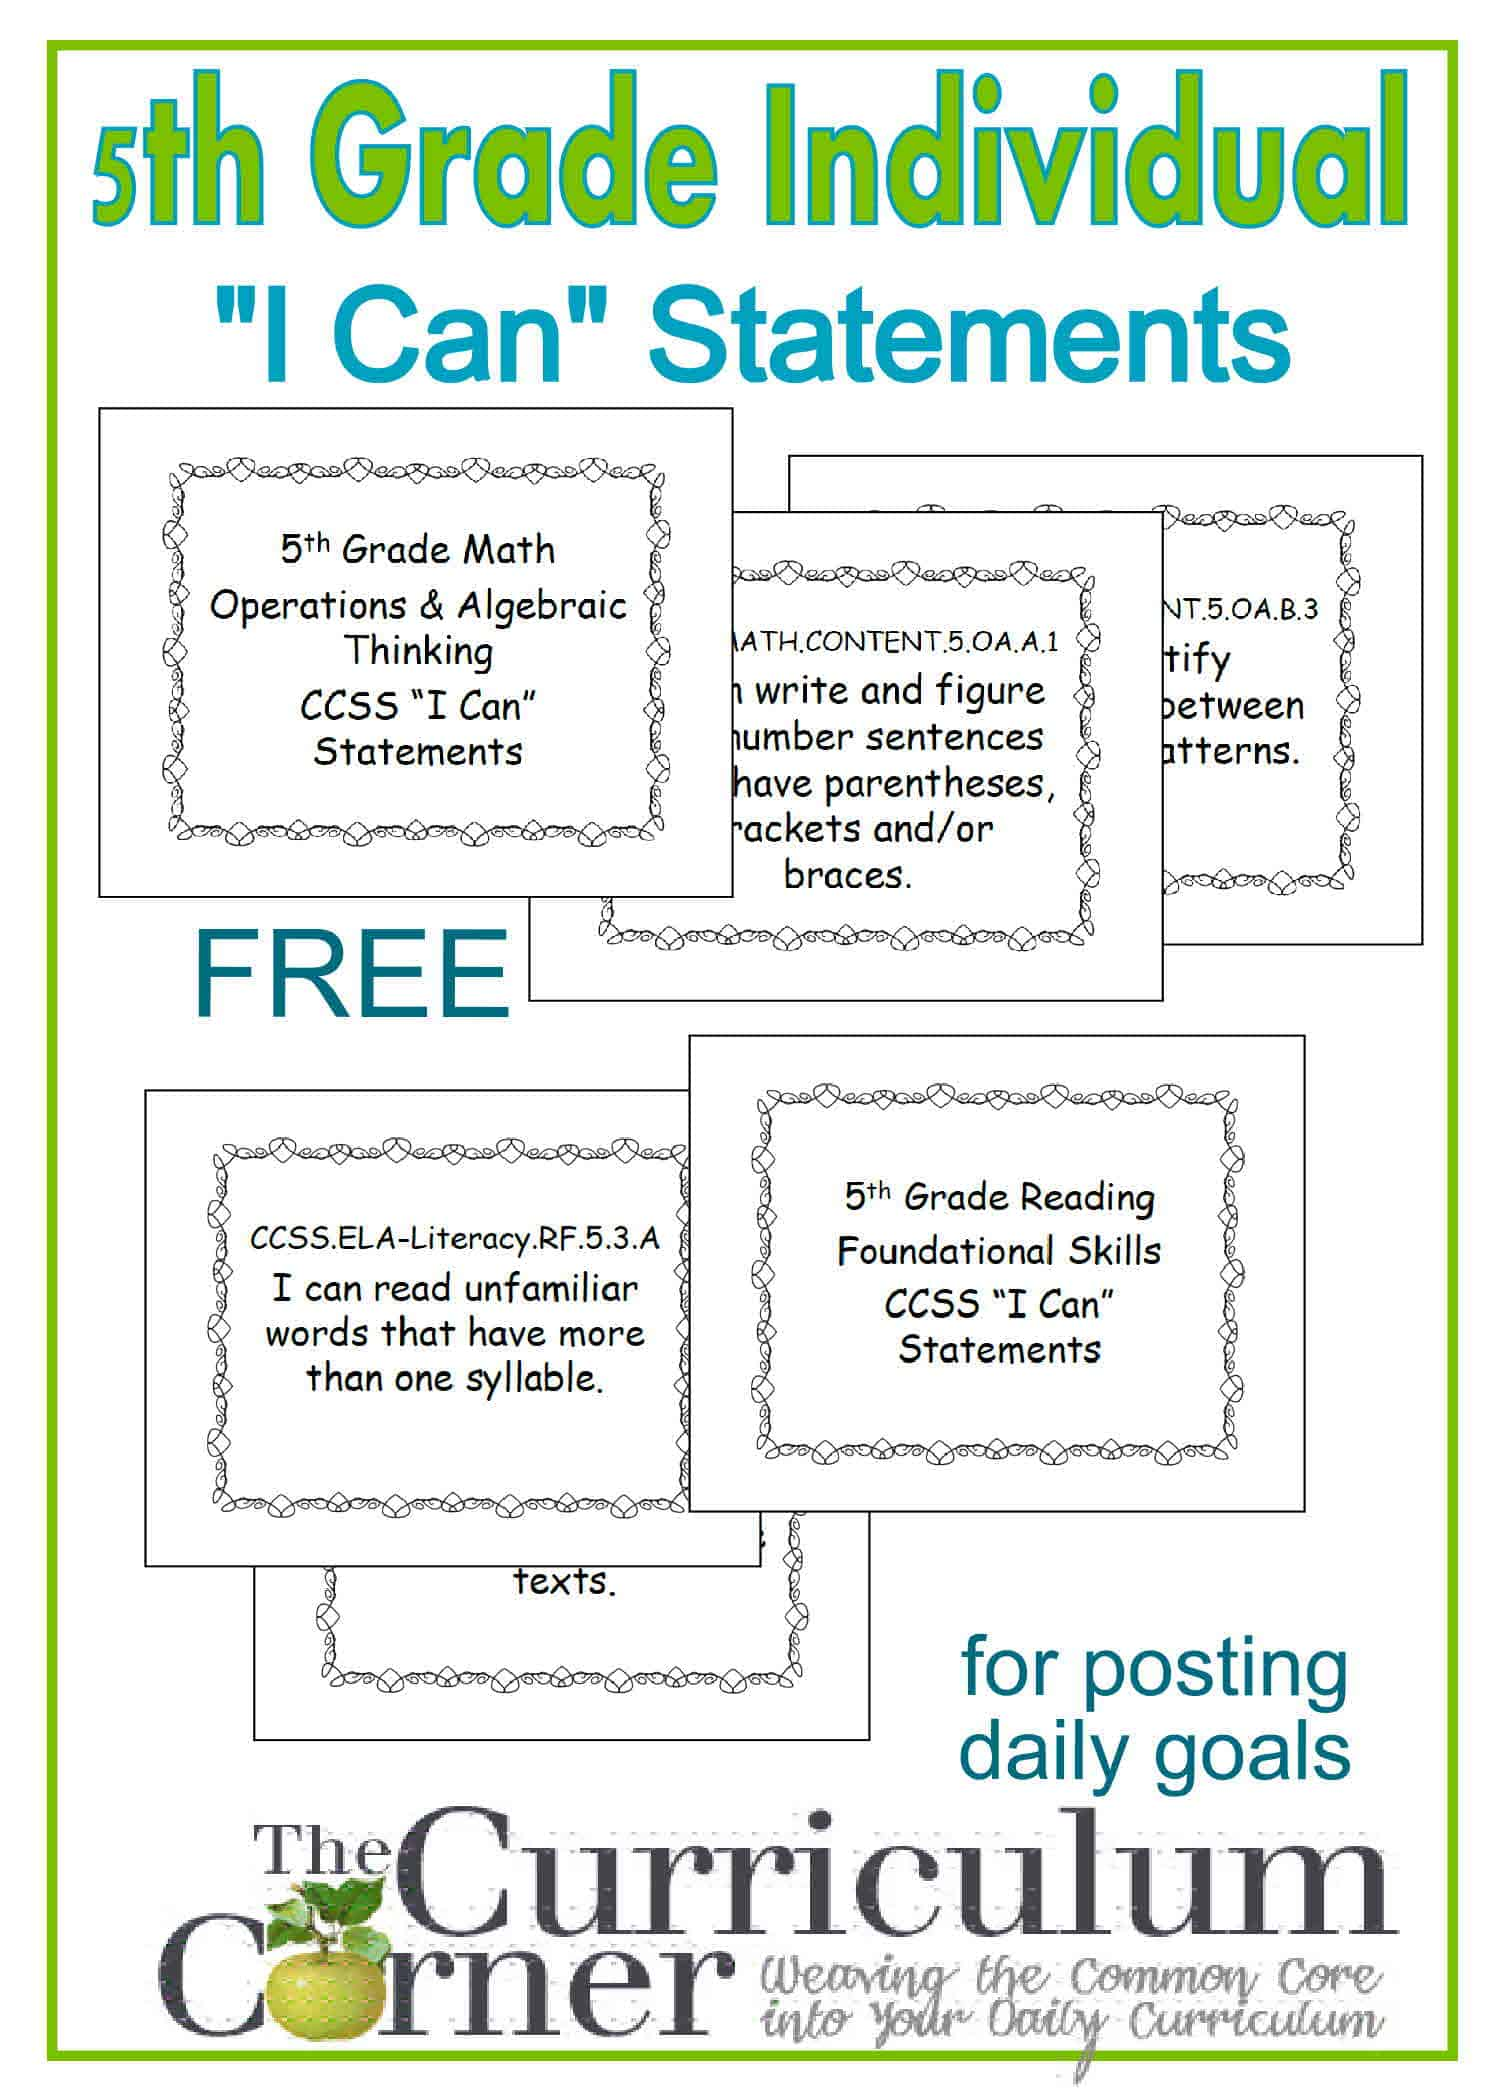 5th Grade Individual I Can Statement Posters One Per